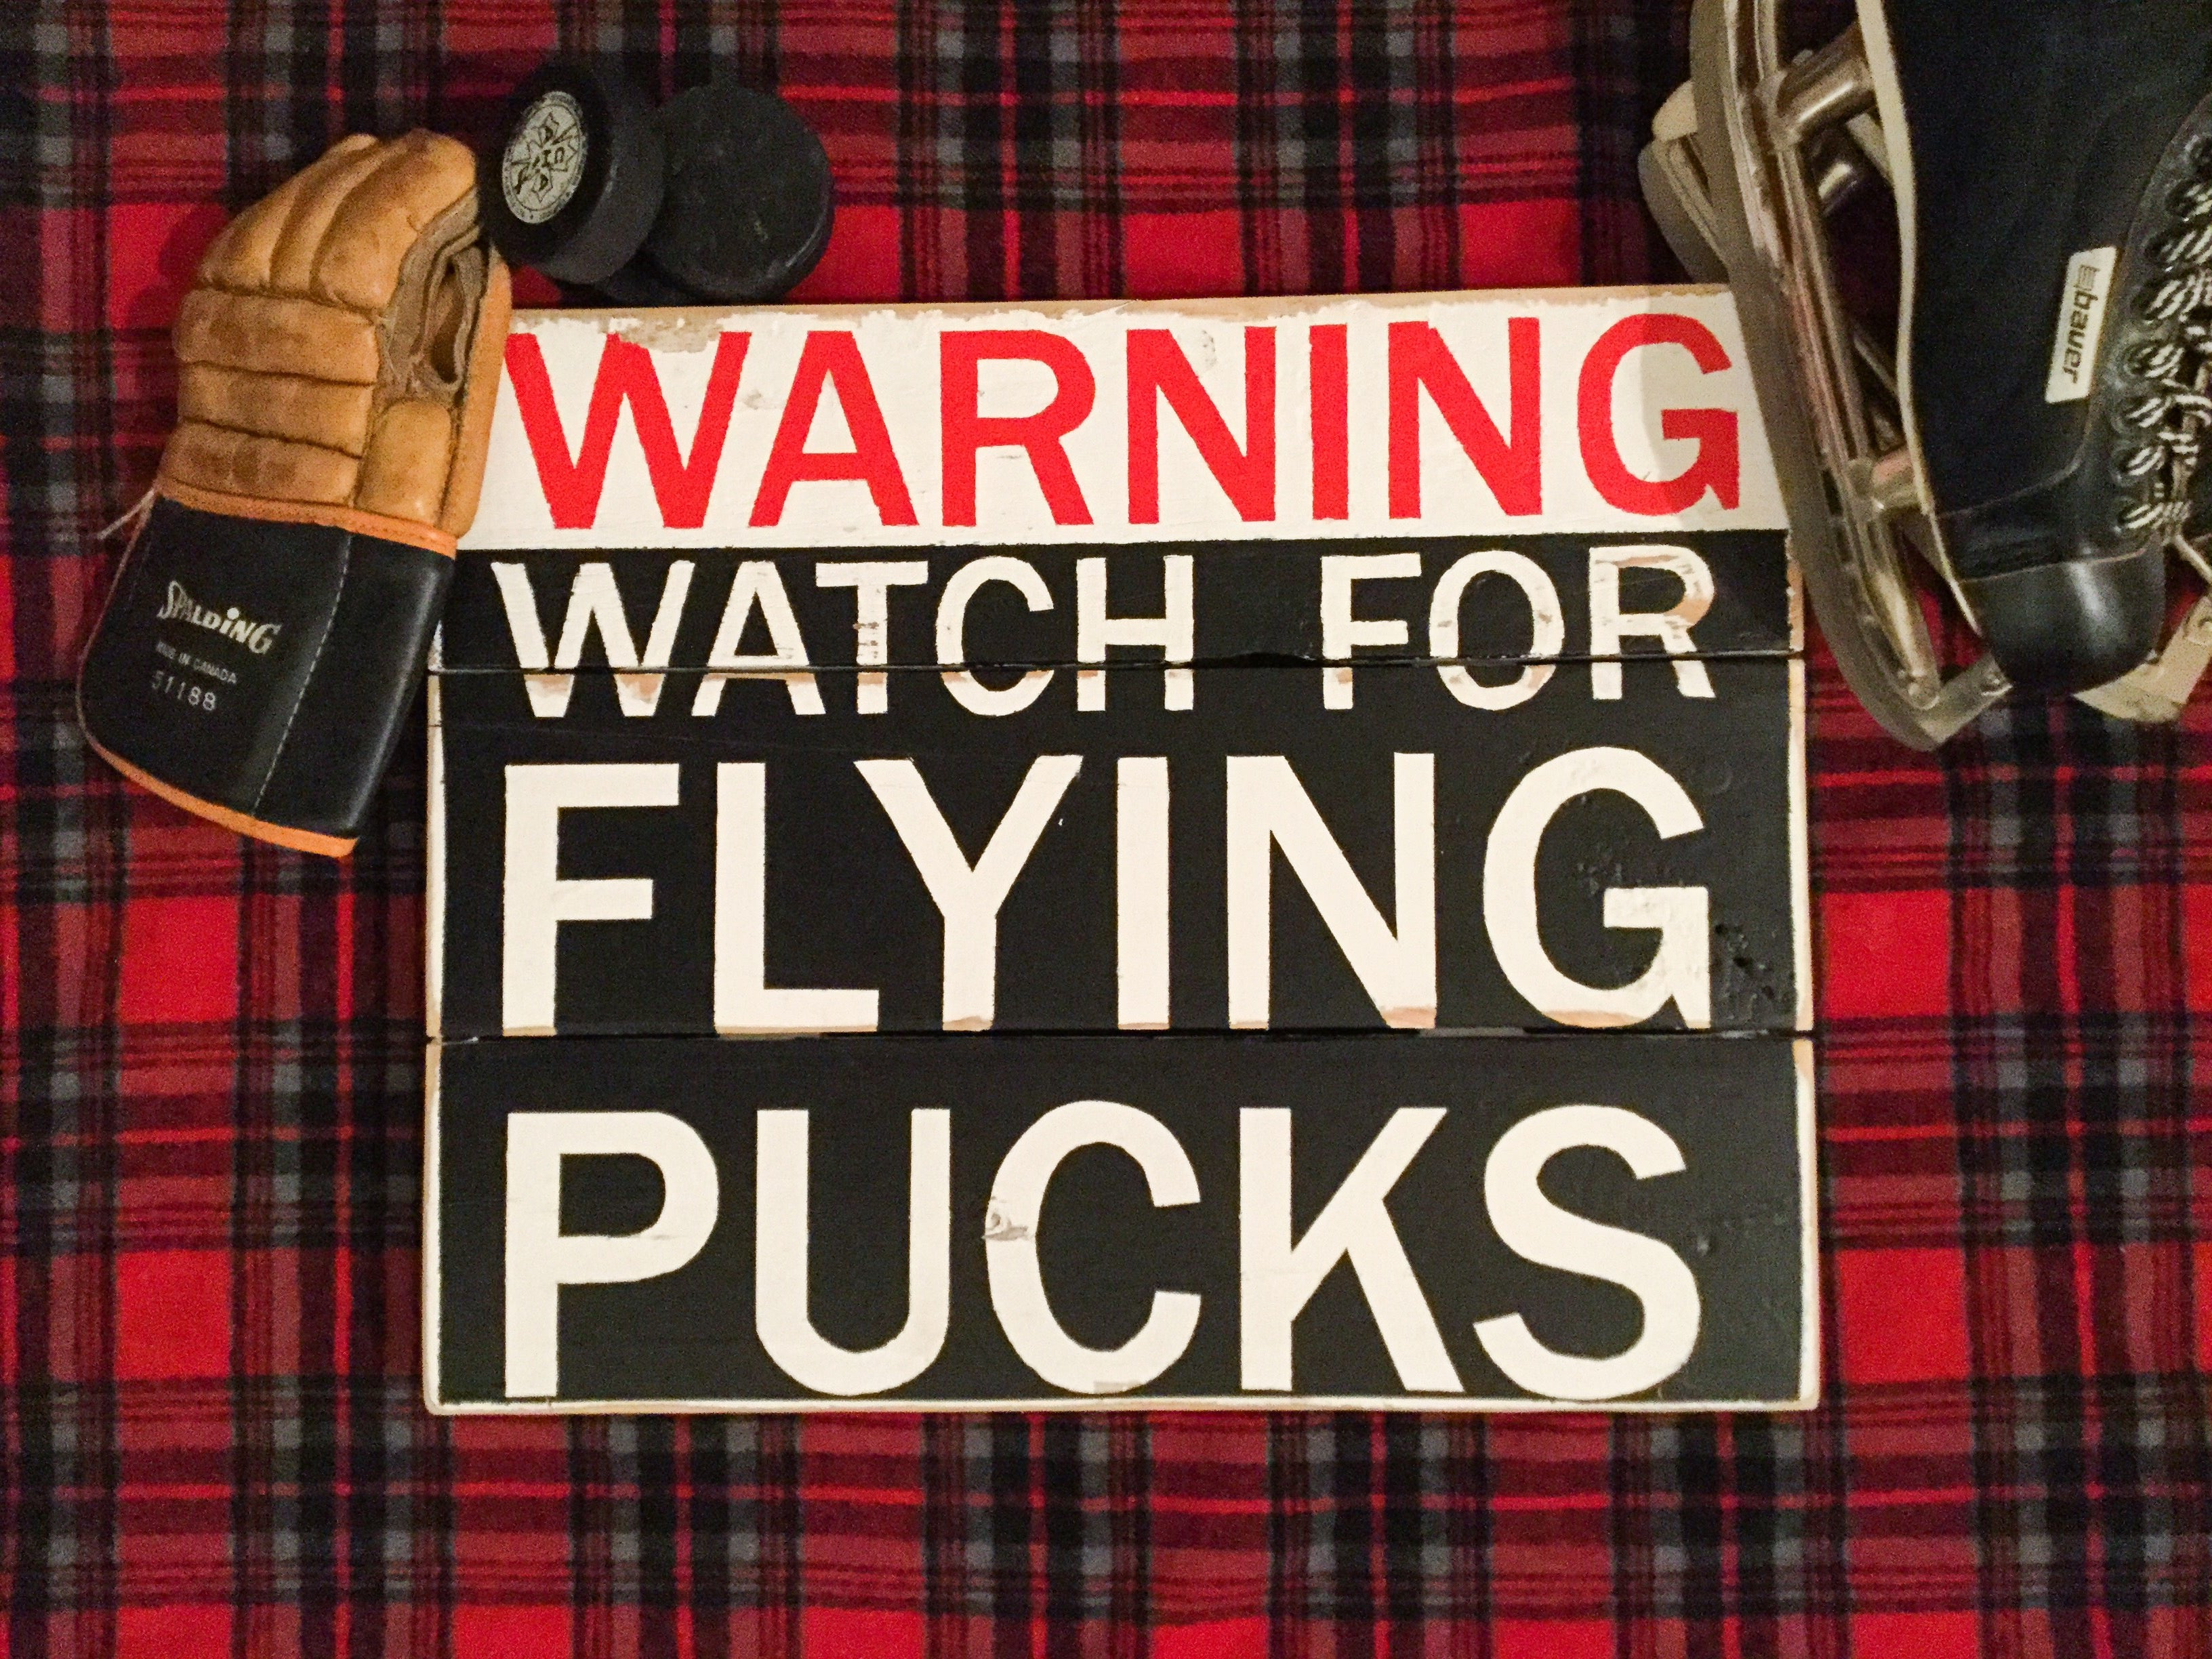 Warning Watch for Flying Pucks Sign